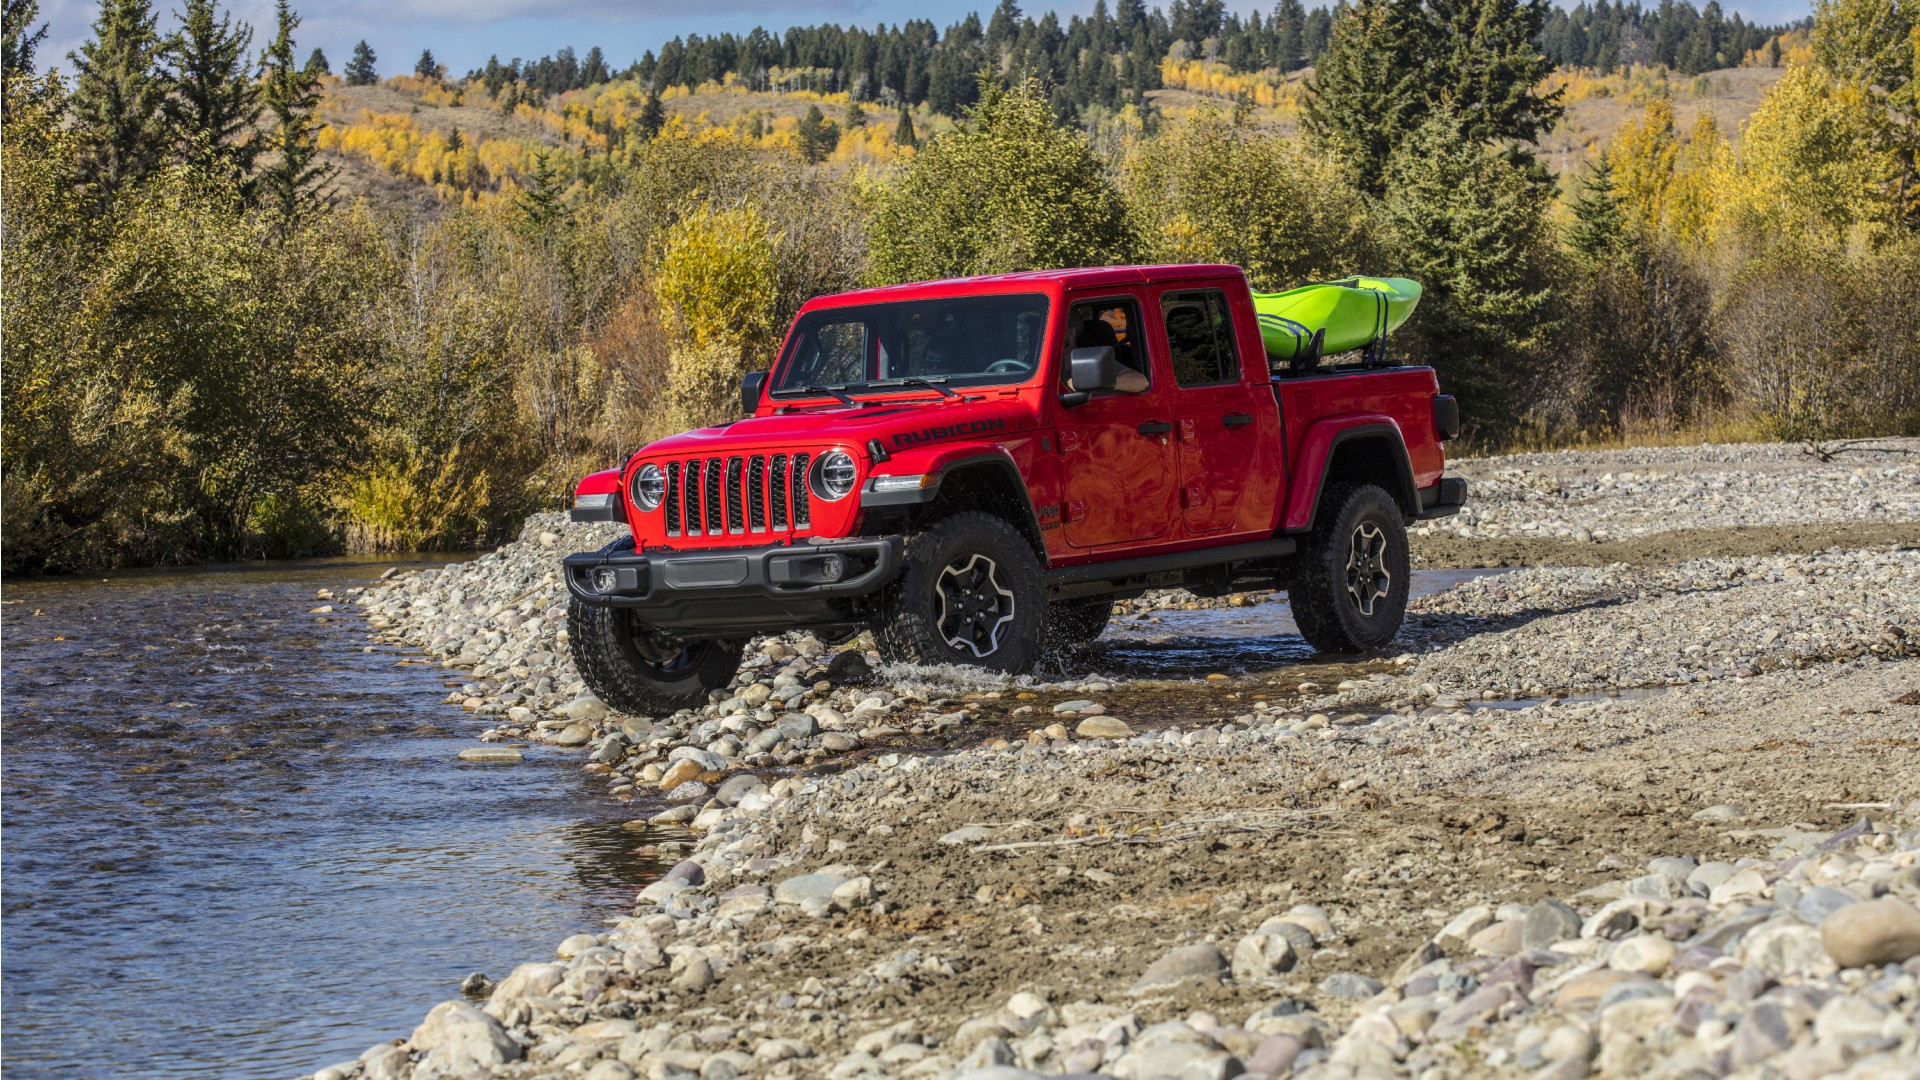 Car Wallpapers Hd 2015 Download 2020 Jeep Gladiator Rubicon 2 Wallpaper Hd Car